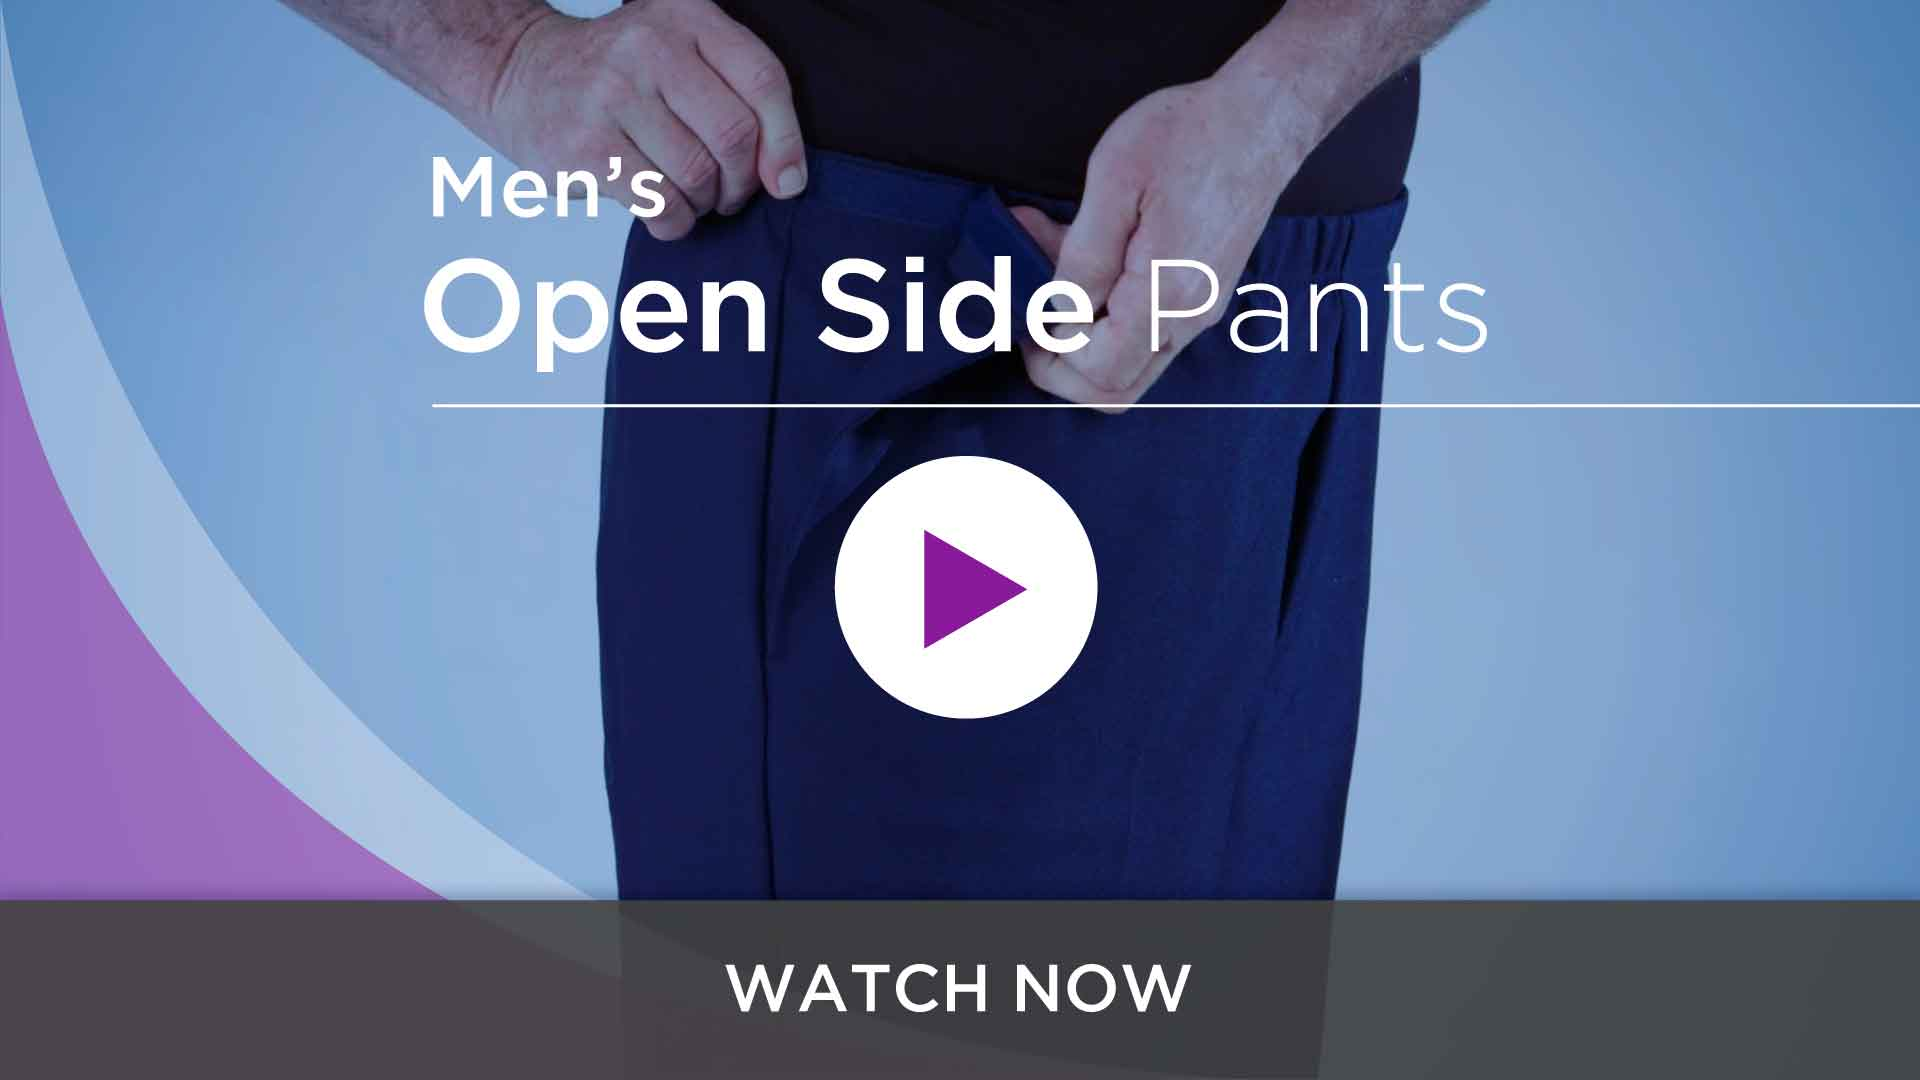 Men's Open Side Pants